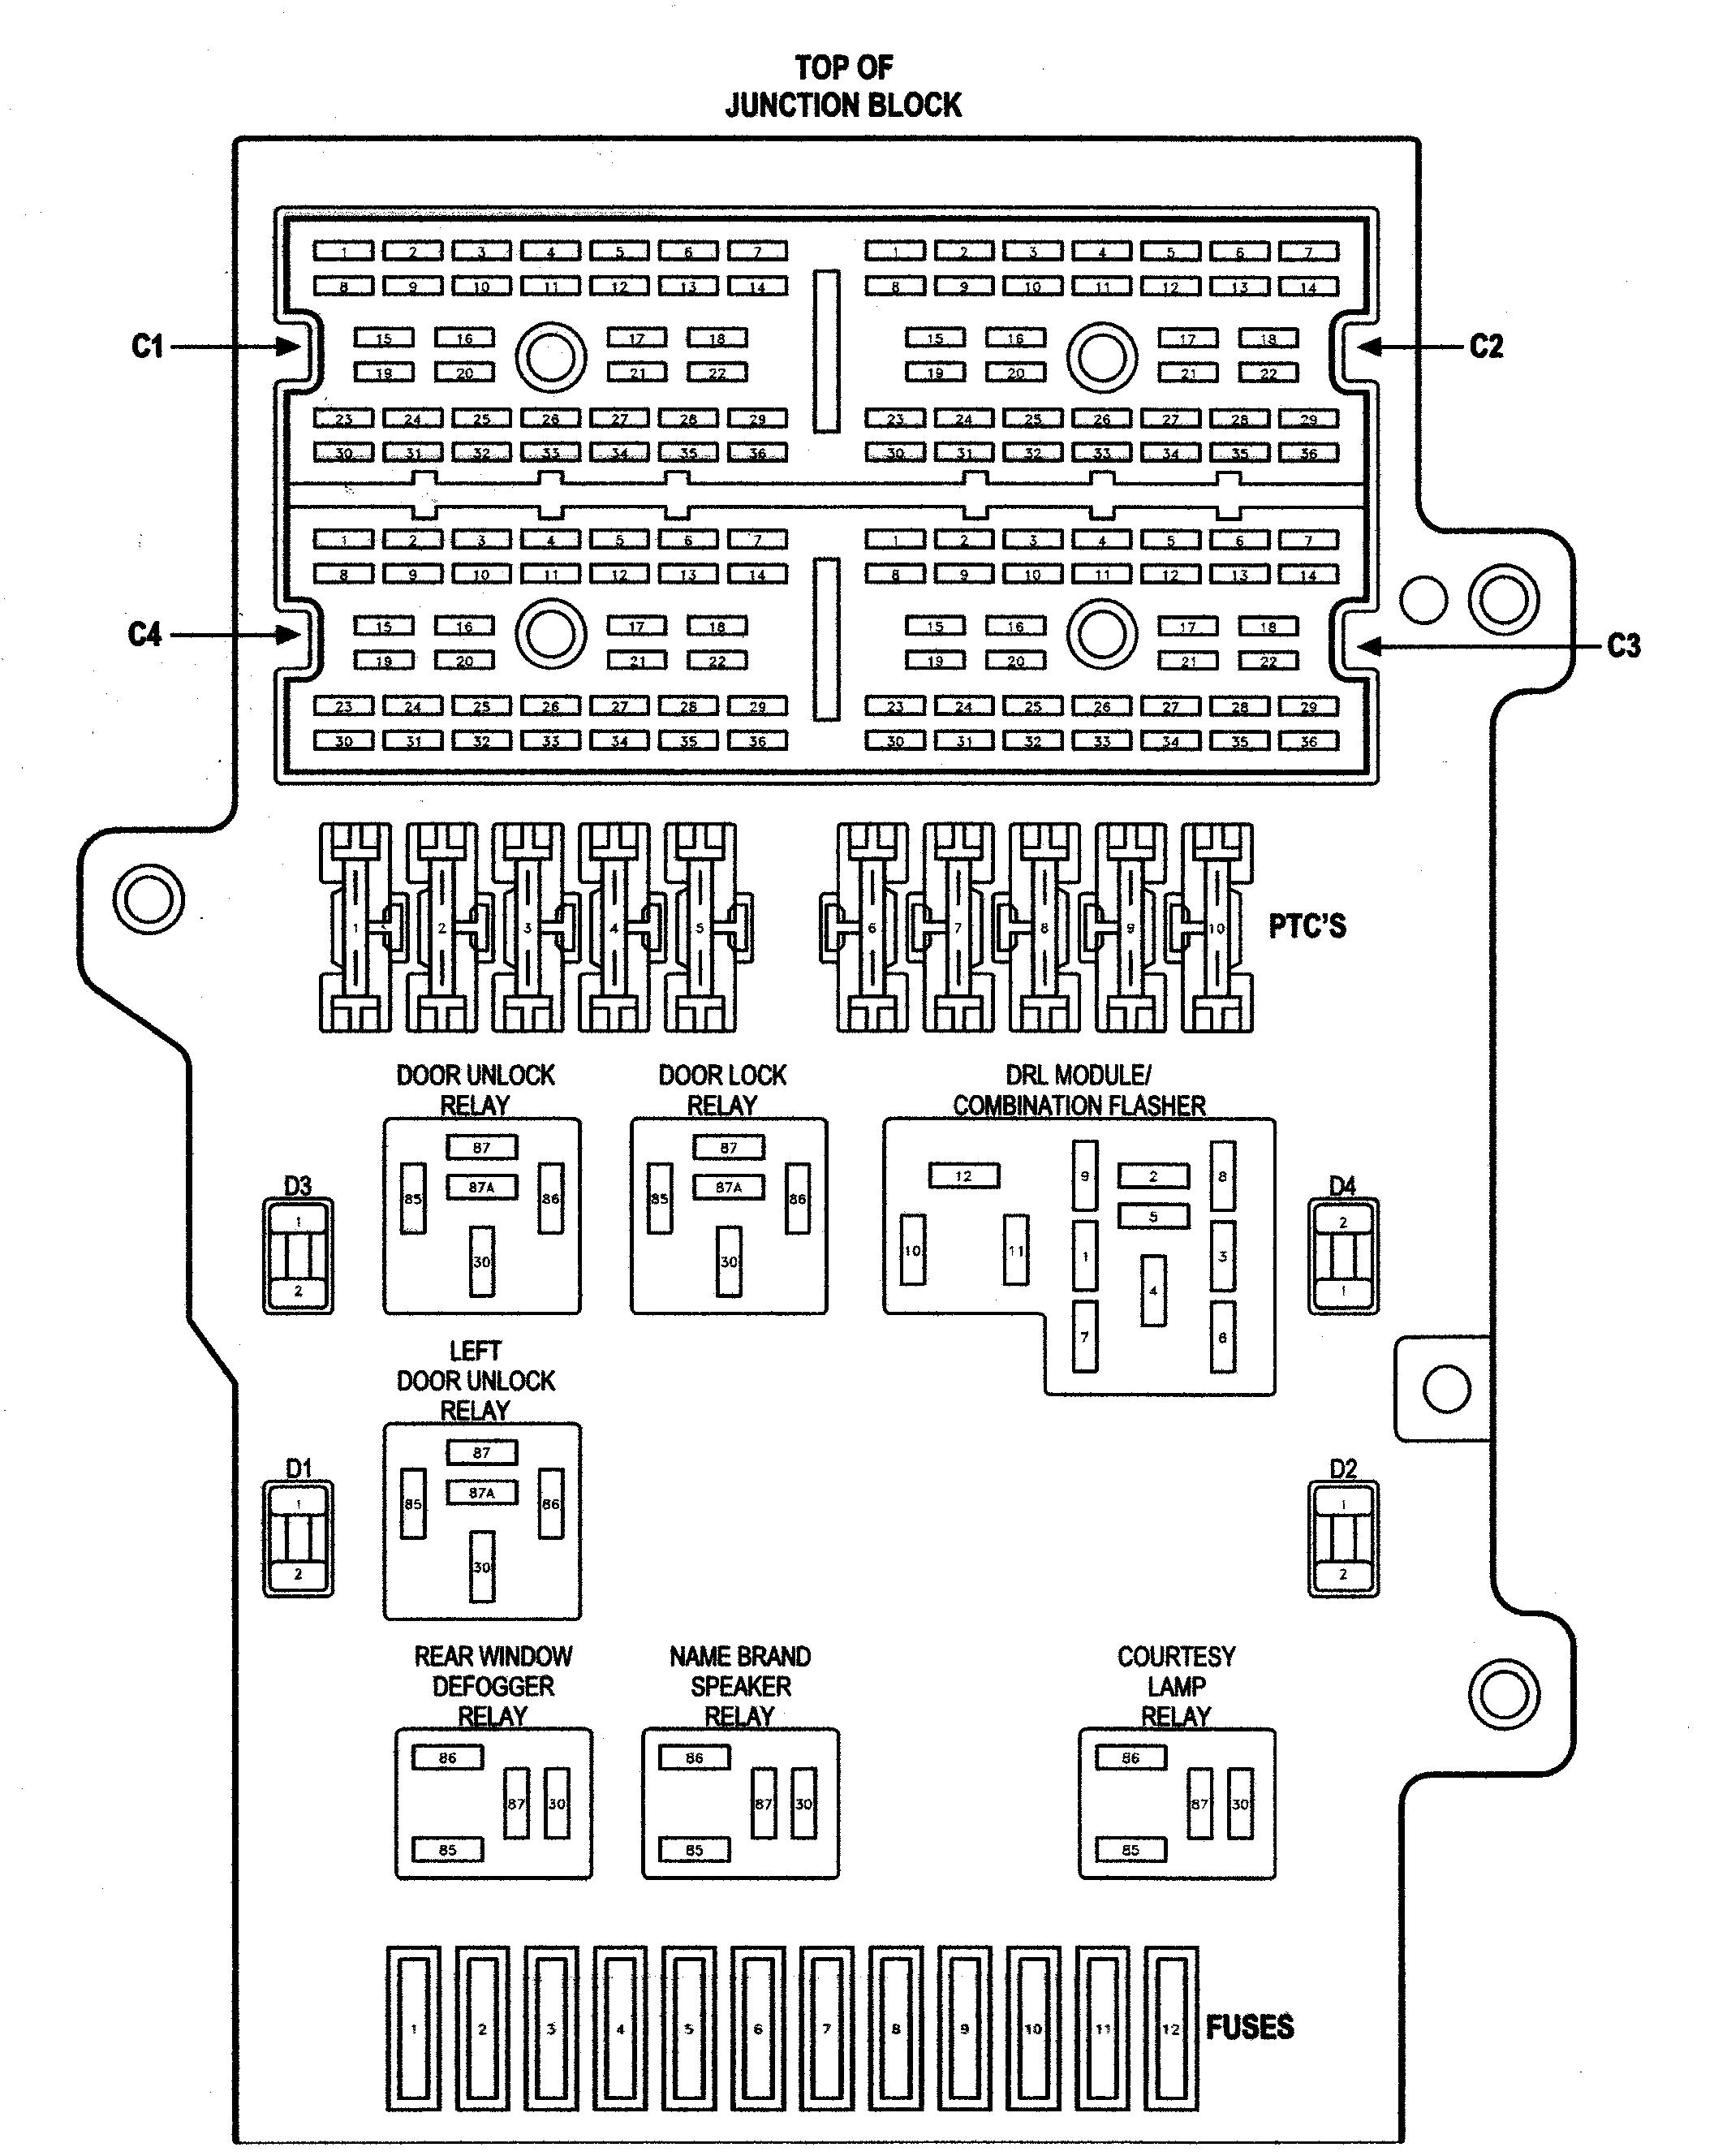 1998 Lincoln Town Car Fuse Box Diagram : lincoln, diagram, Chrysler, Voyager, Diagram, Lincoln, Wiring